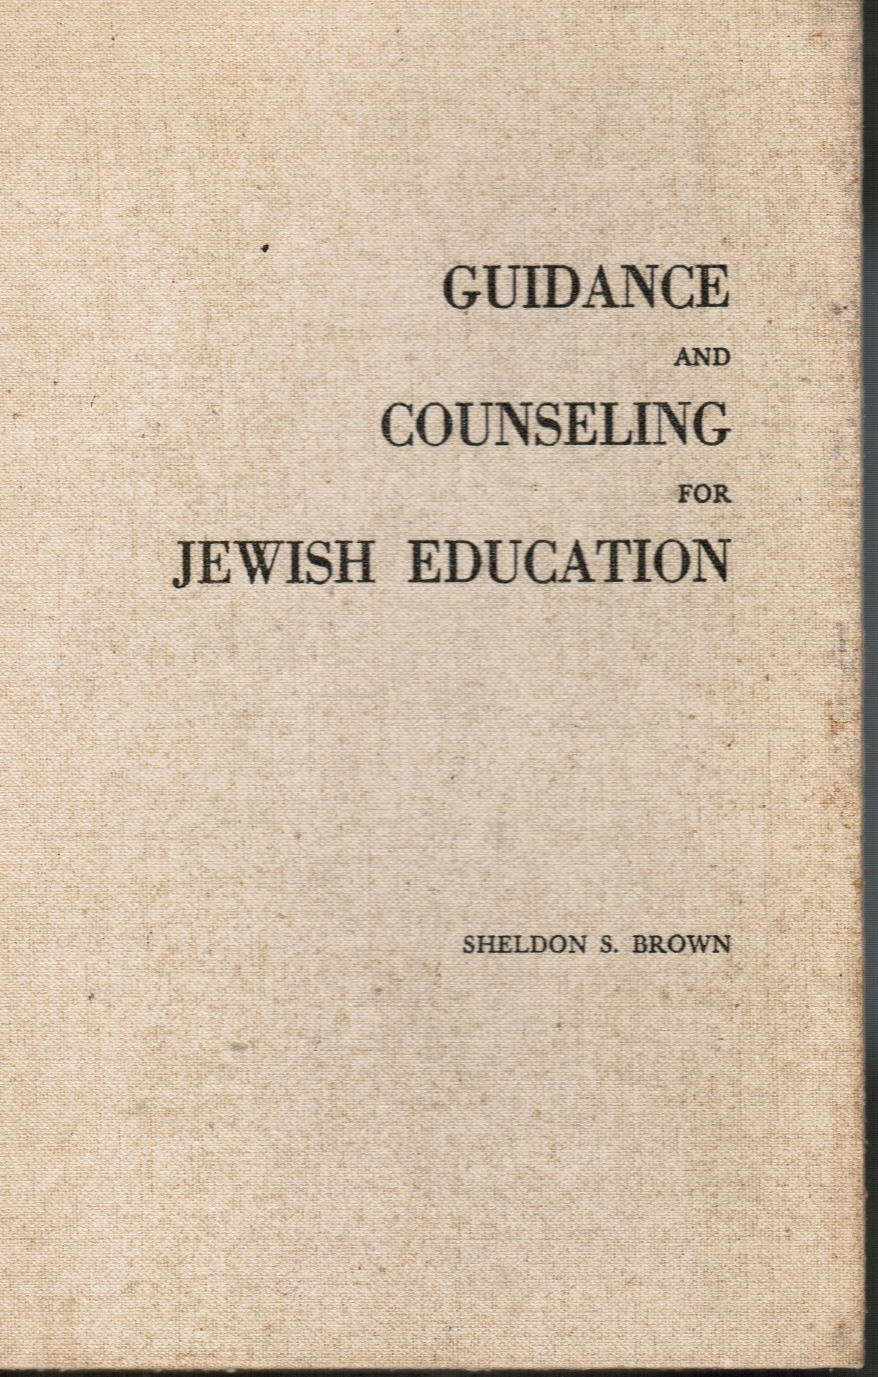 Image for Guidance and Counseling for Jewish Education